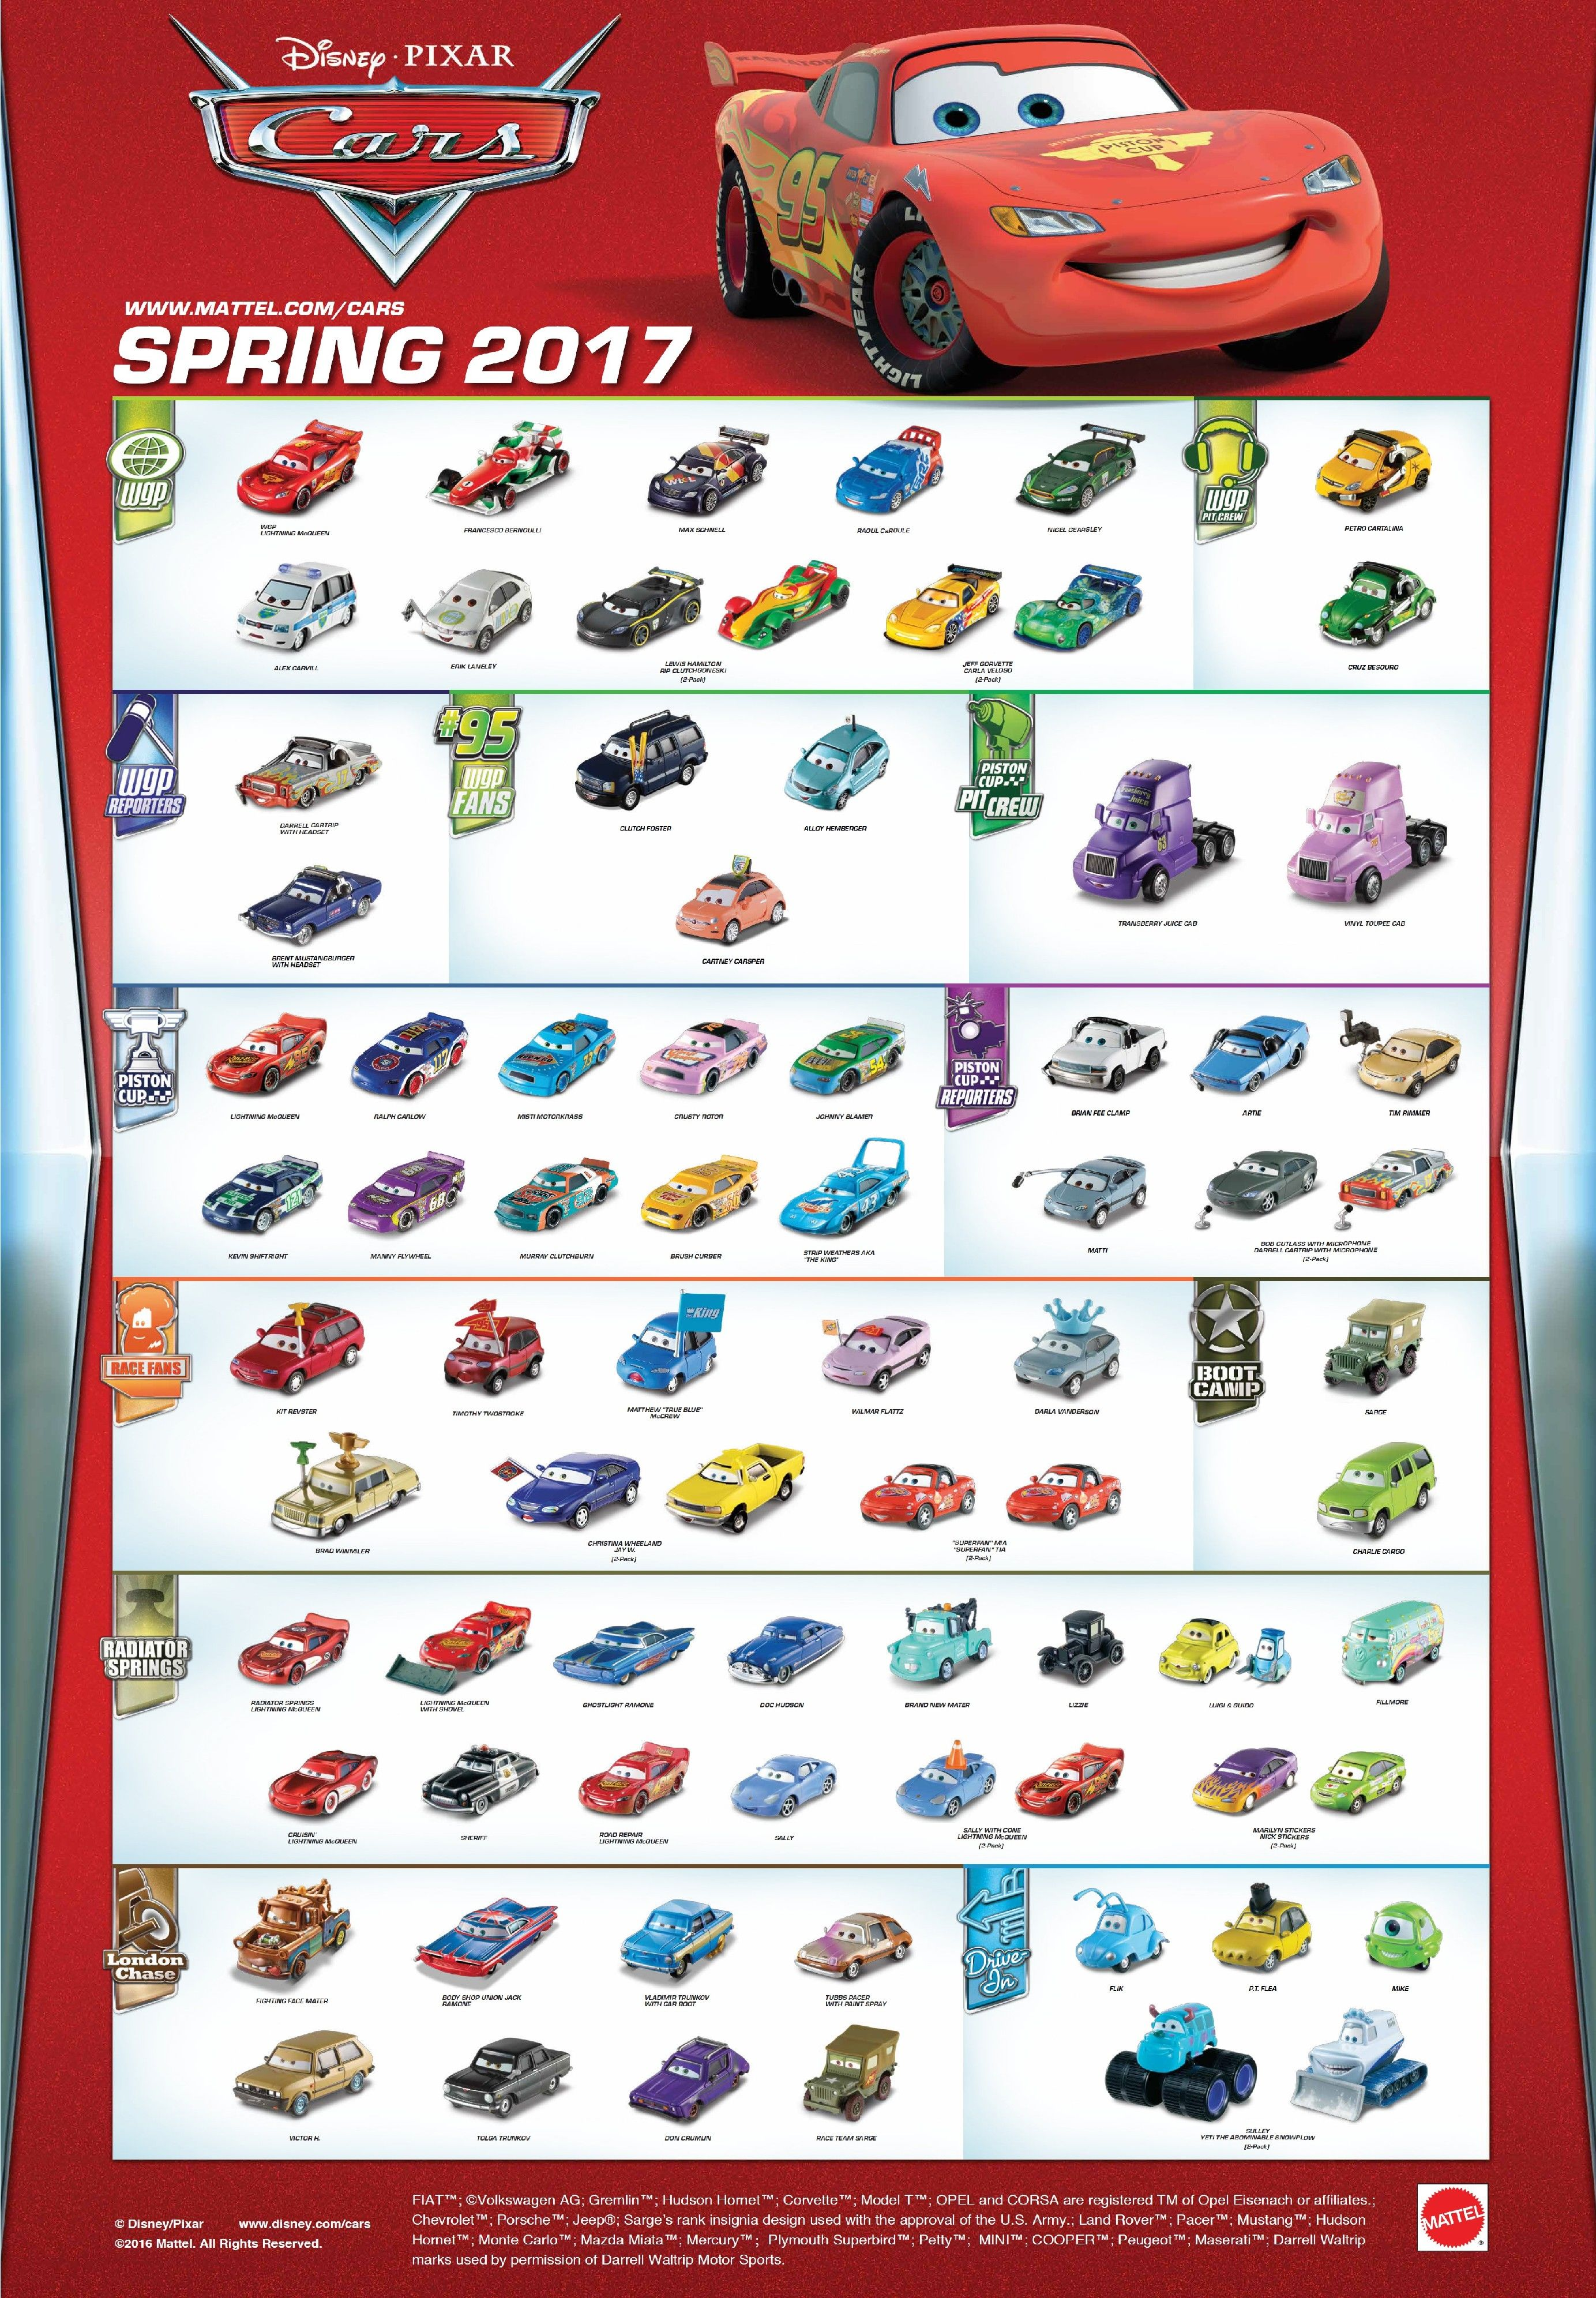 Permalink to Disney Cars Toys